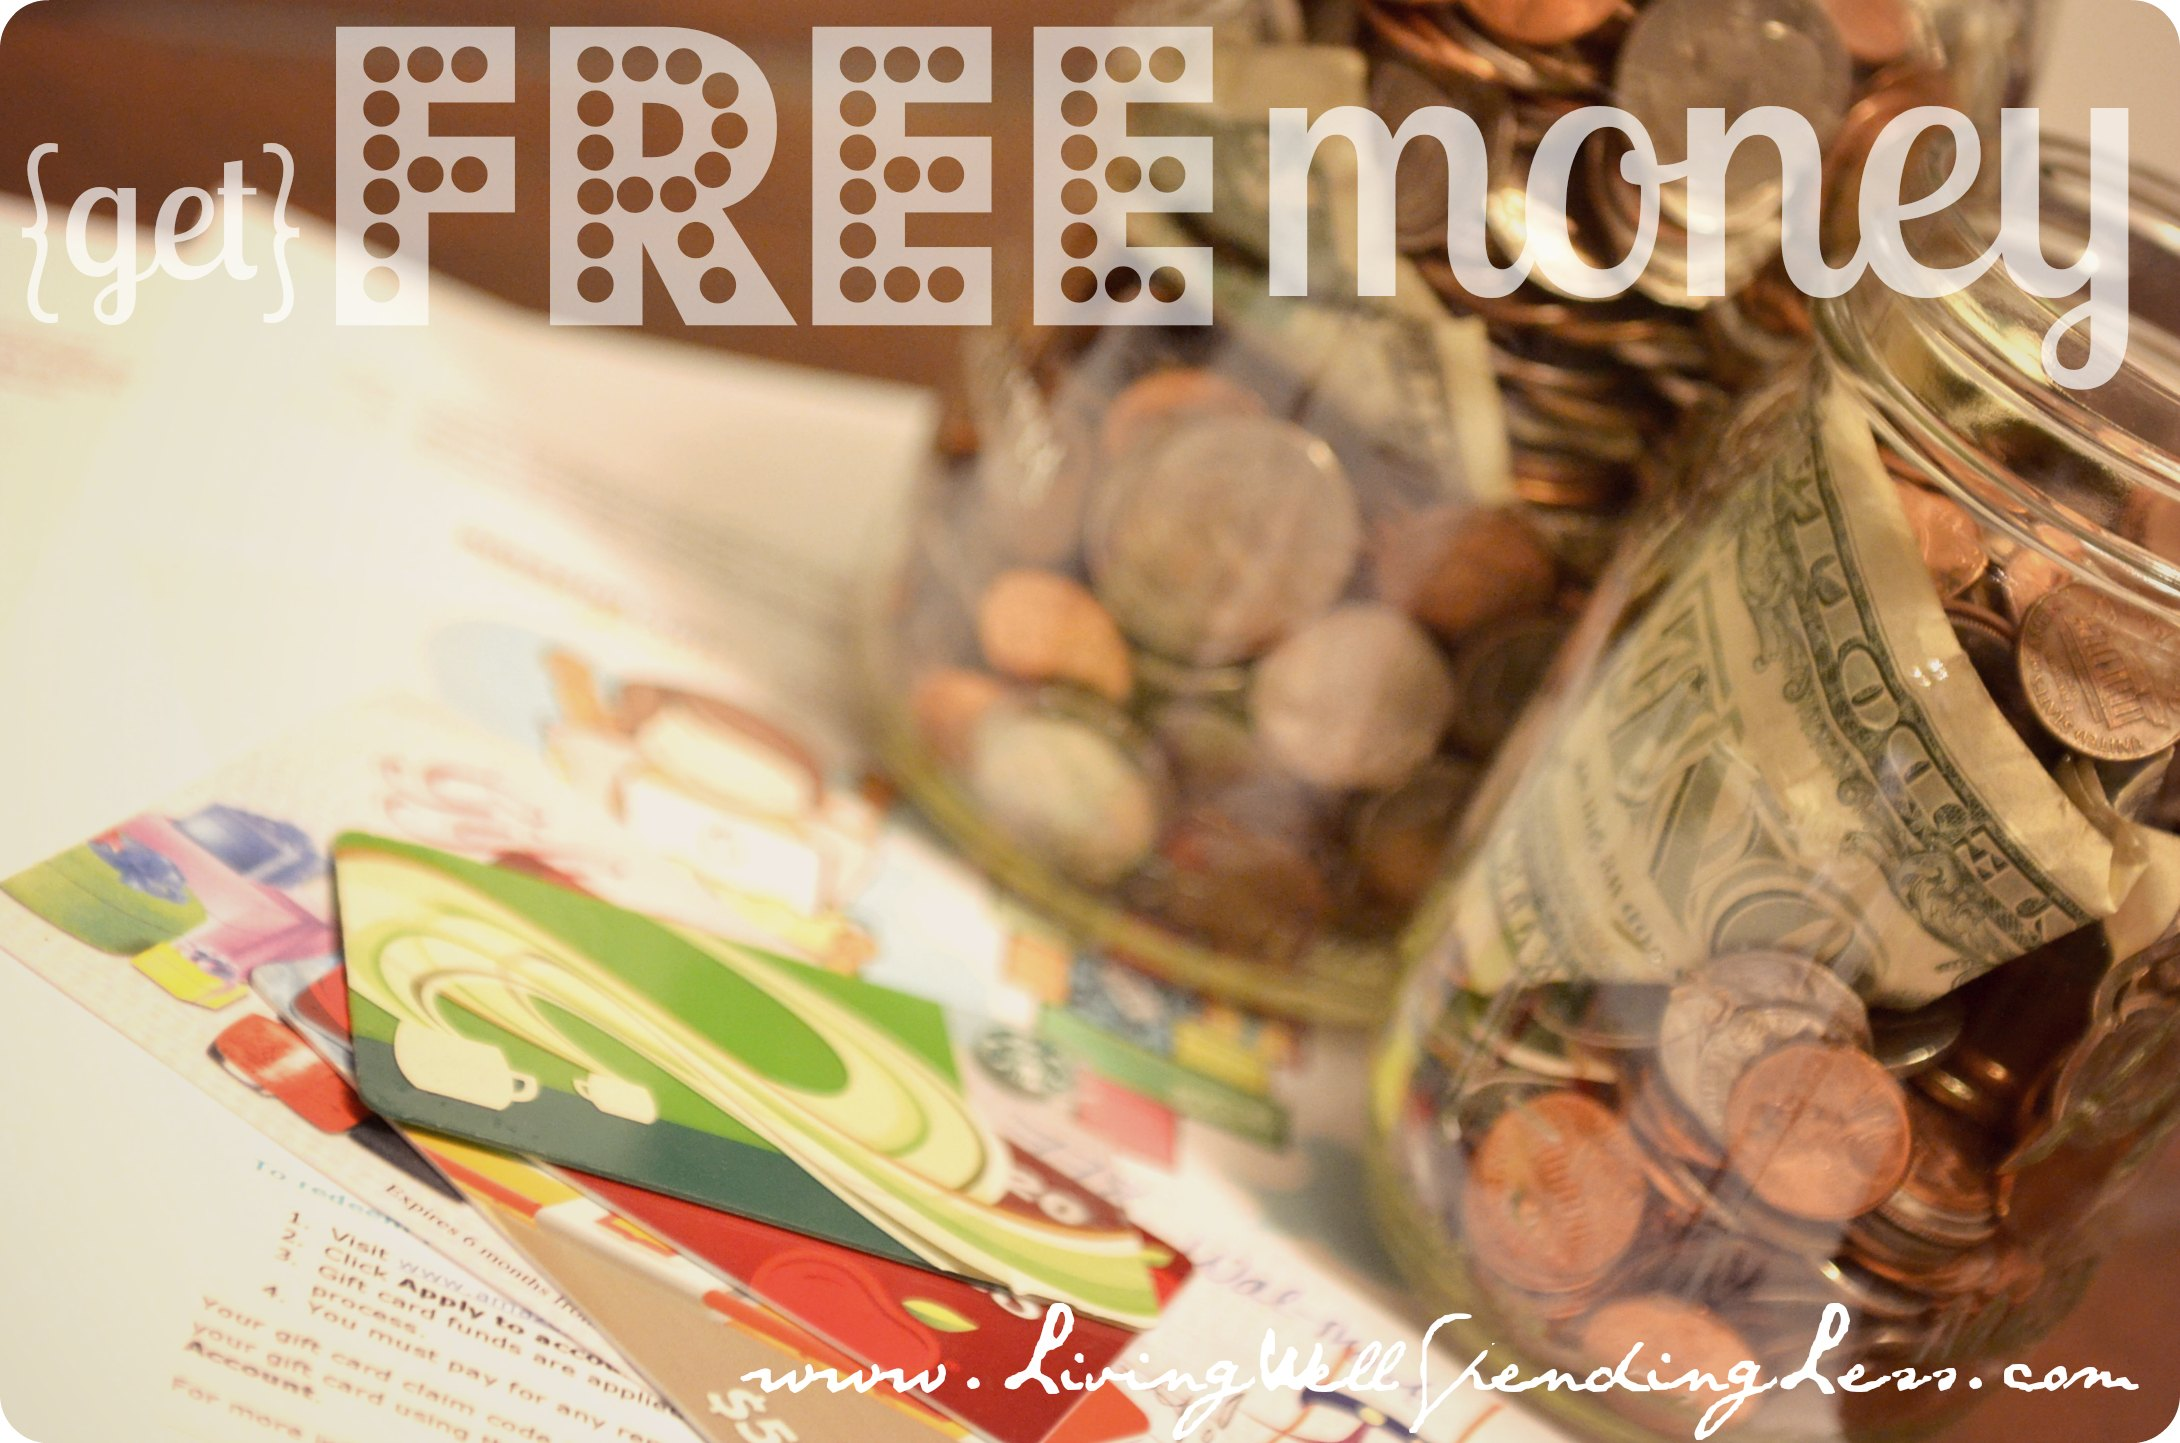 Worksheet Fre Money get free money day 23 living well spending save